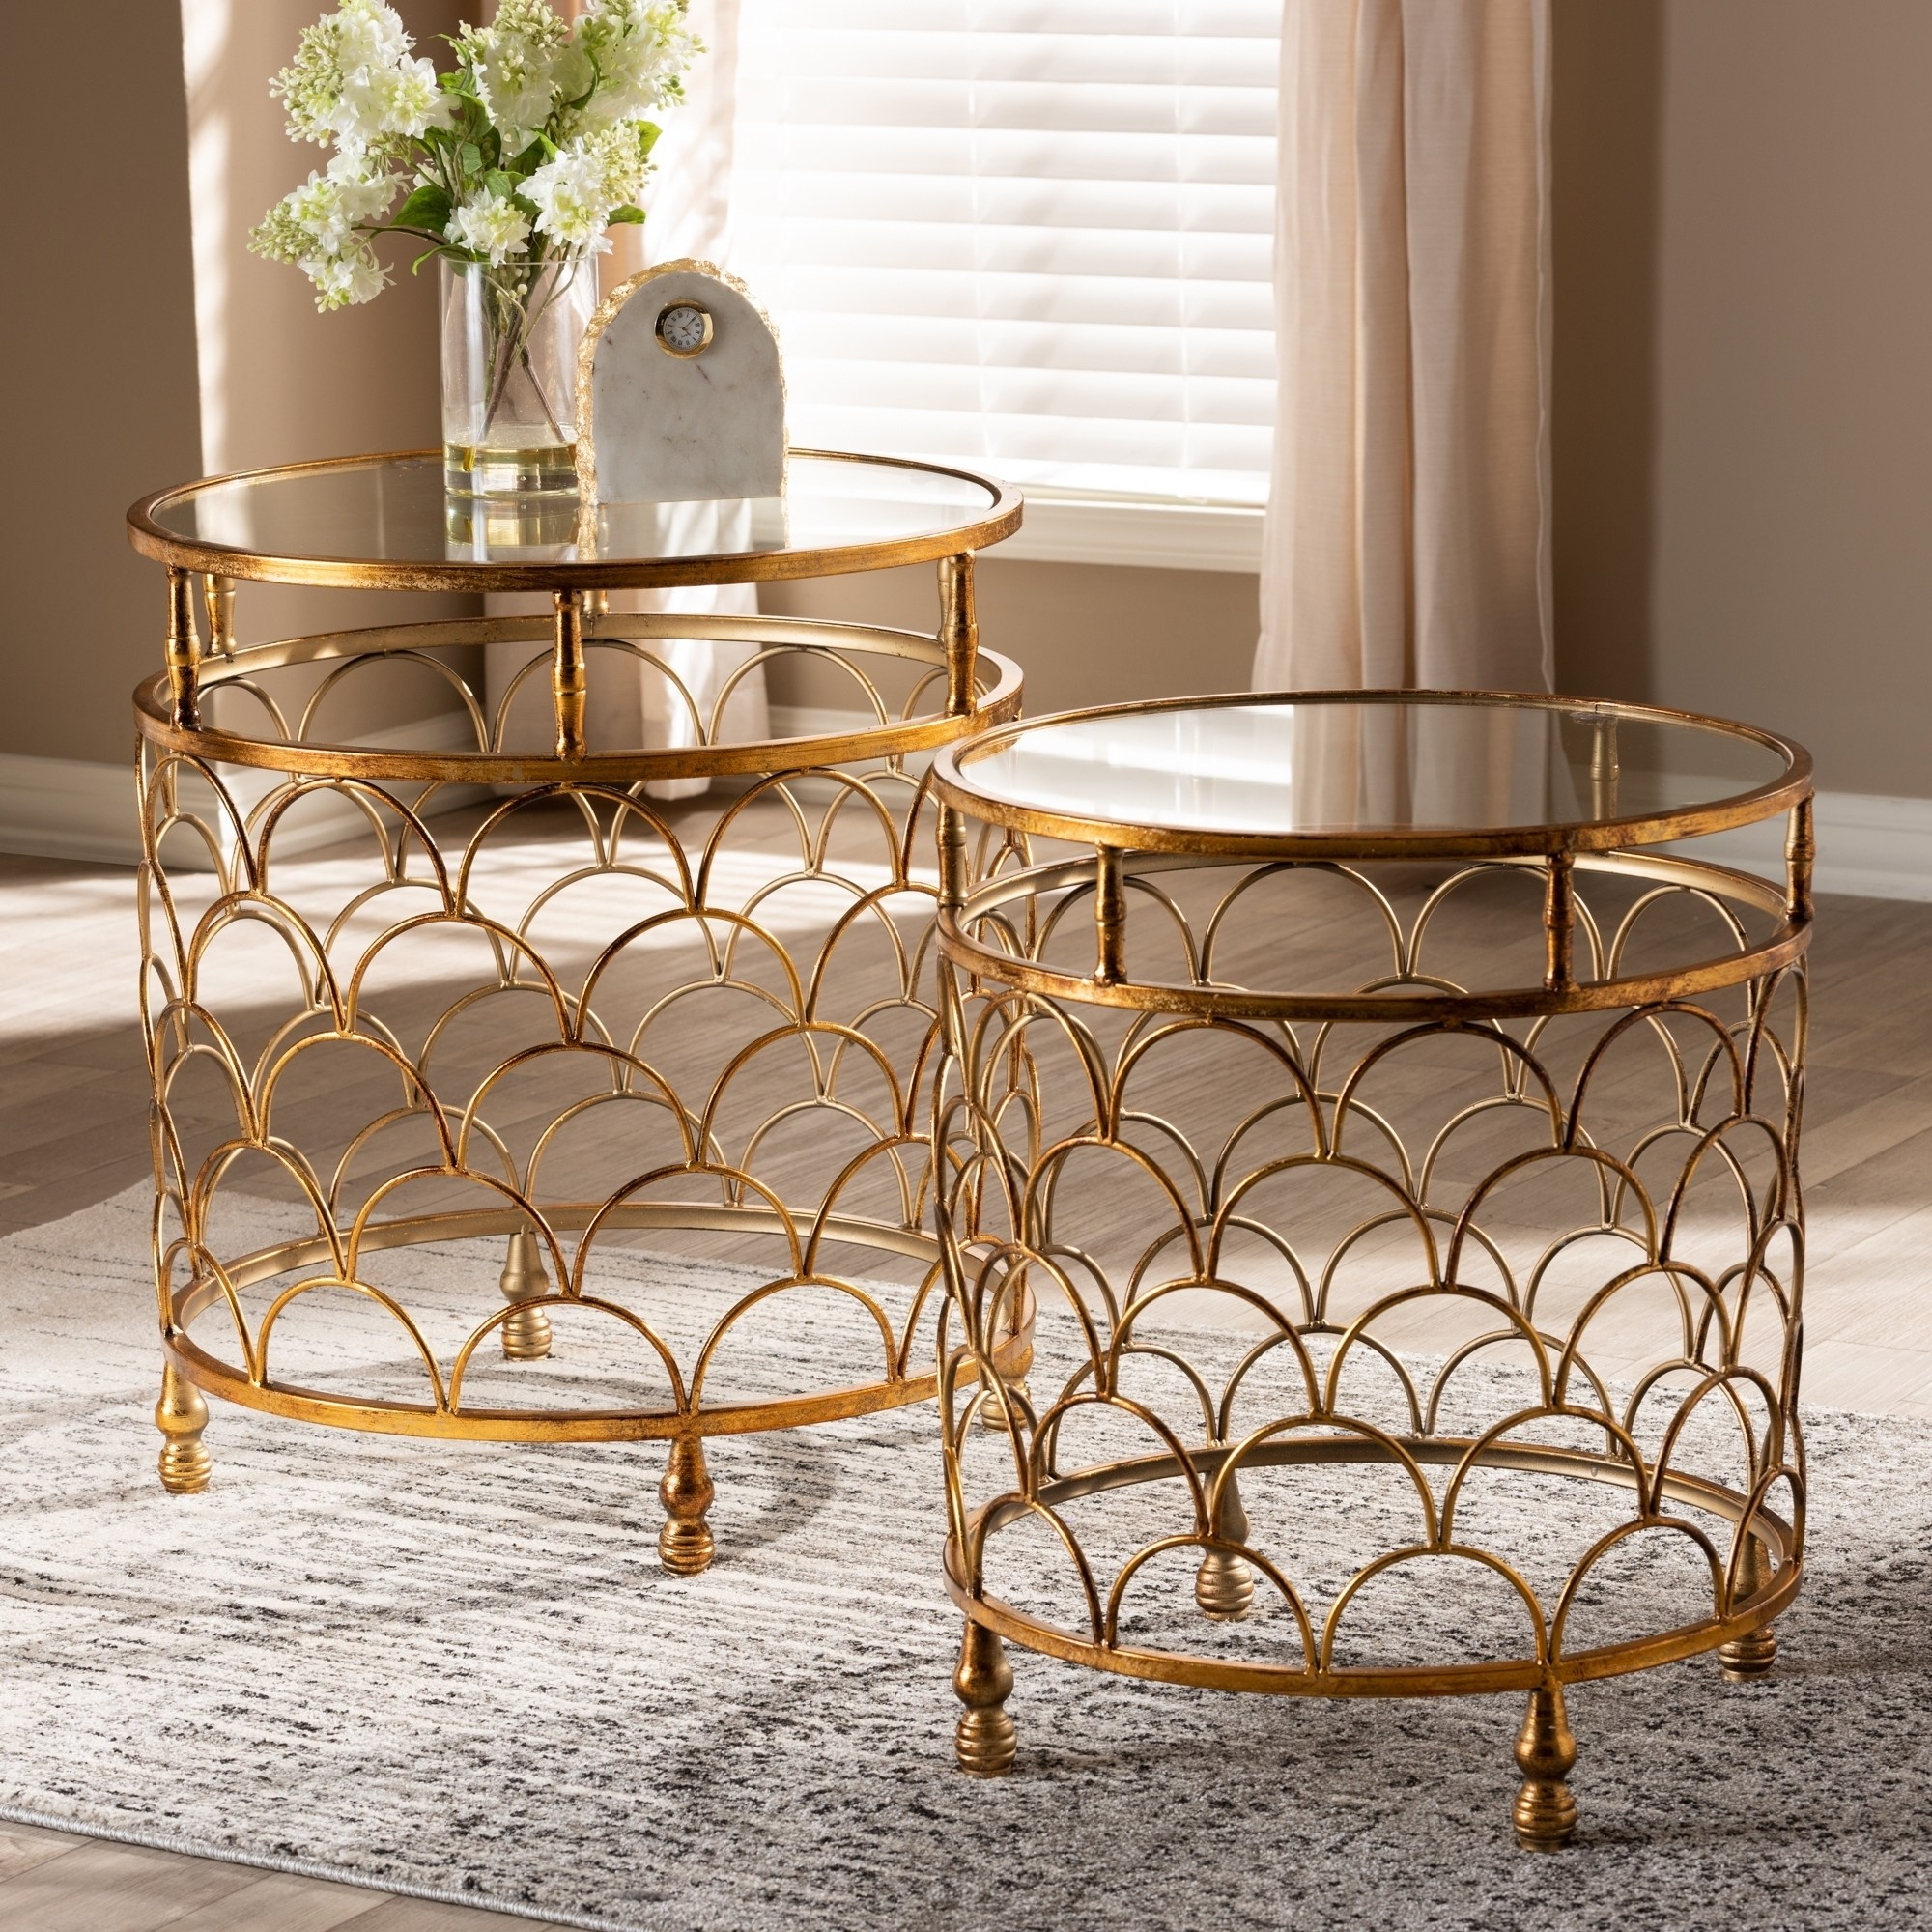 contemporary antique gold piece stackable accent table set room essentials stacking free shipping today round tablecloths tiffany hanging lamps console chests furniture small